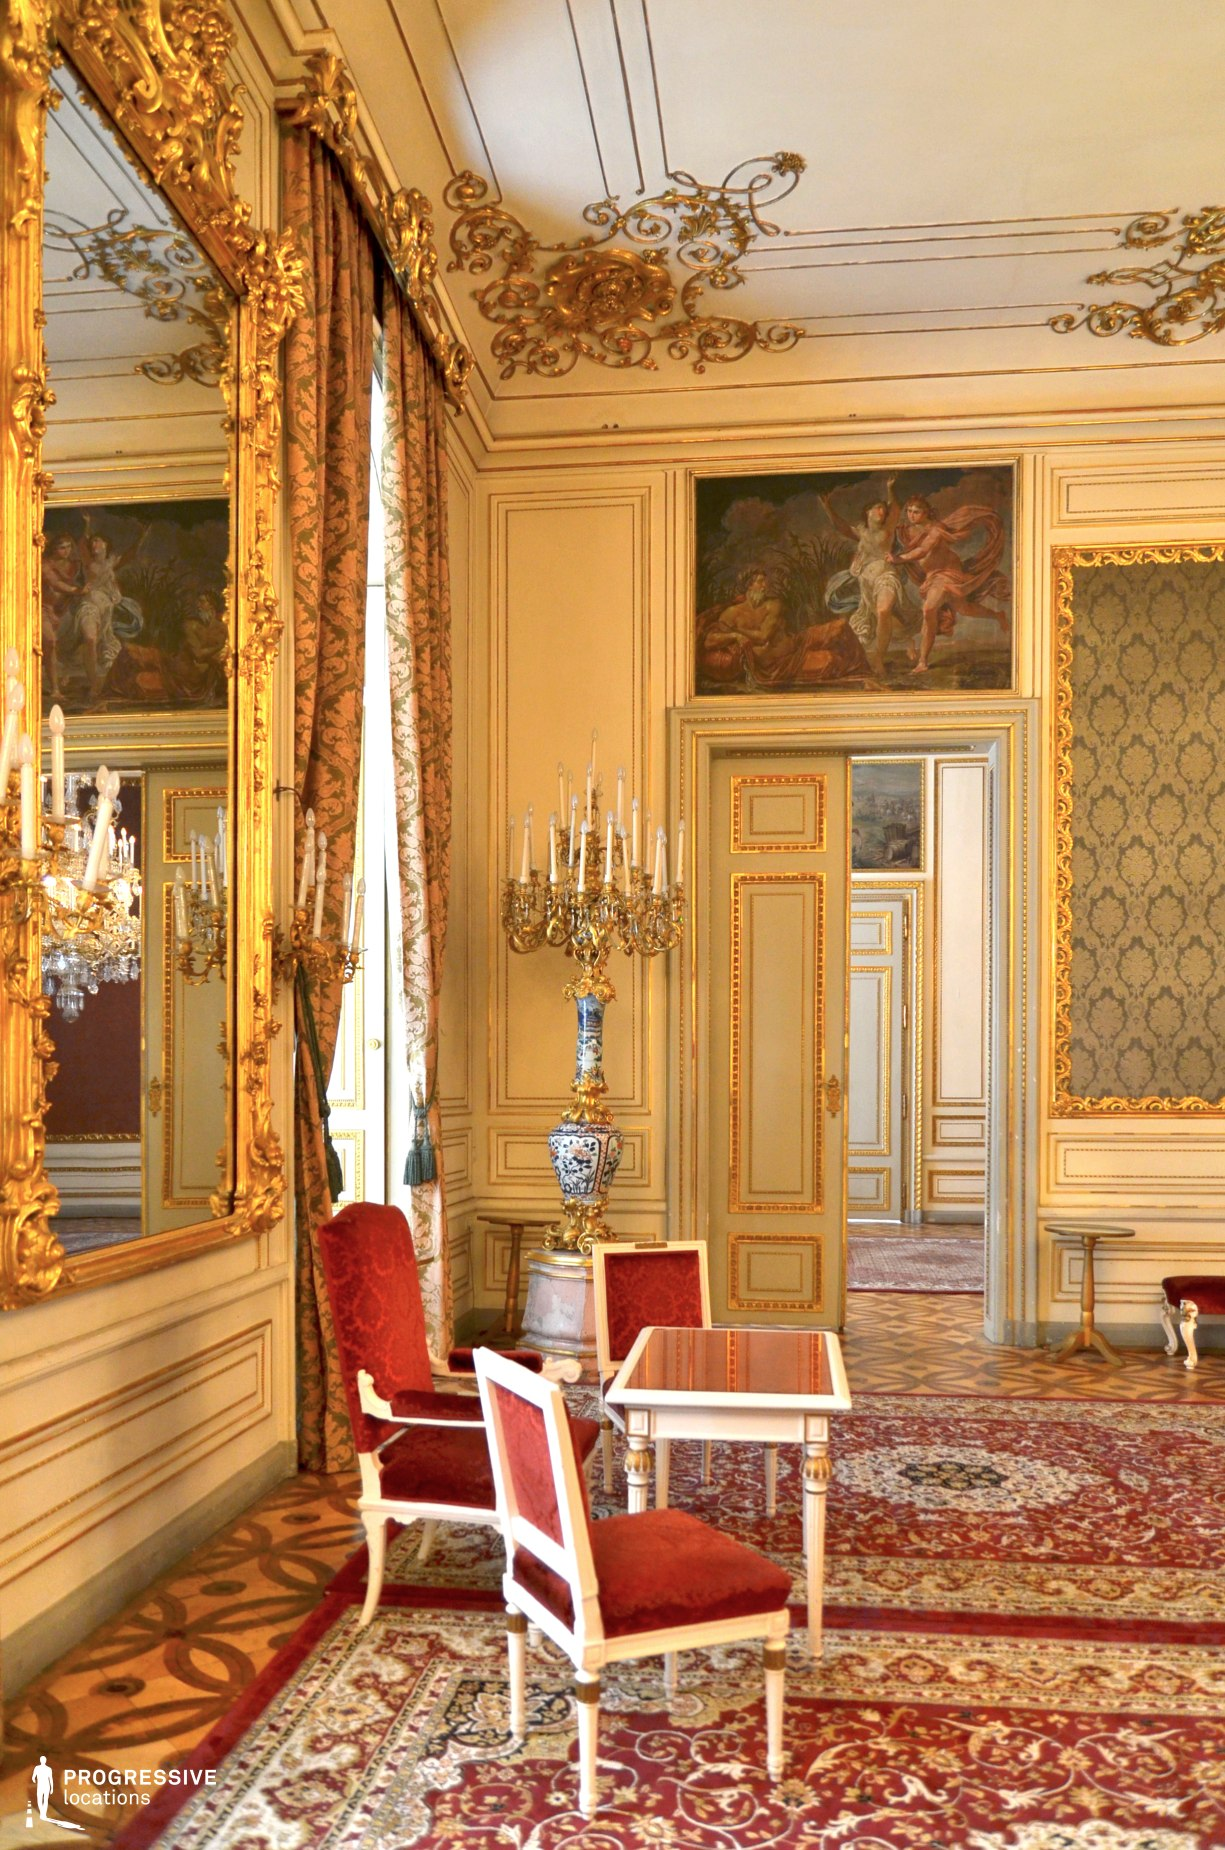 Locations in Austria: Green Salon %26 Mirror, Pallavicini Palace